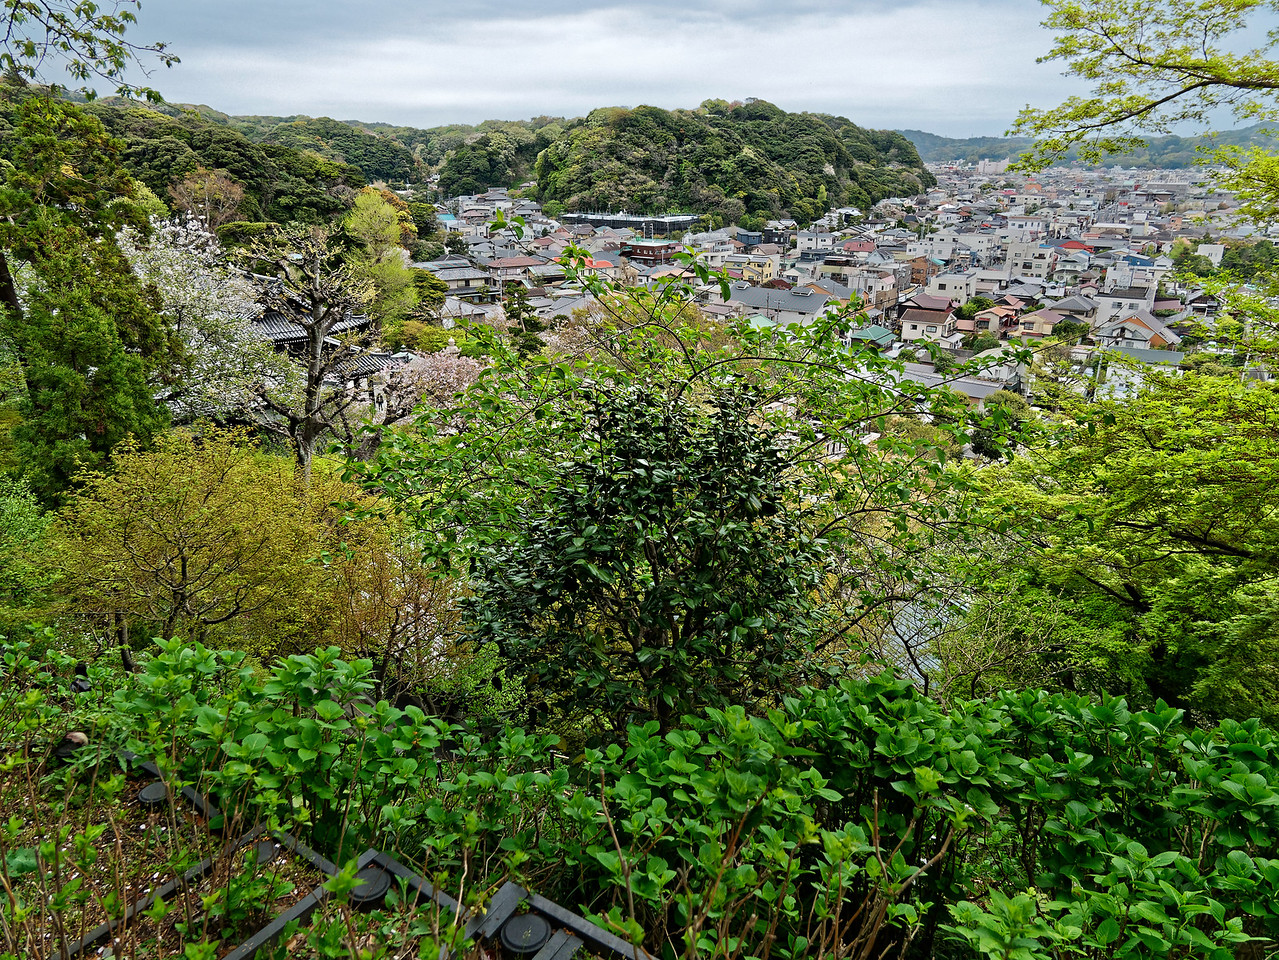 Hasedera Temple is located about halfway up Mount Kamakura. A view from its grounds takes in a portion of the city of Kamakura, with the sea visible from certain vantage points.